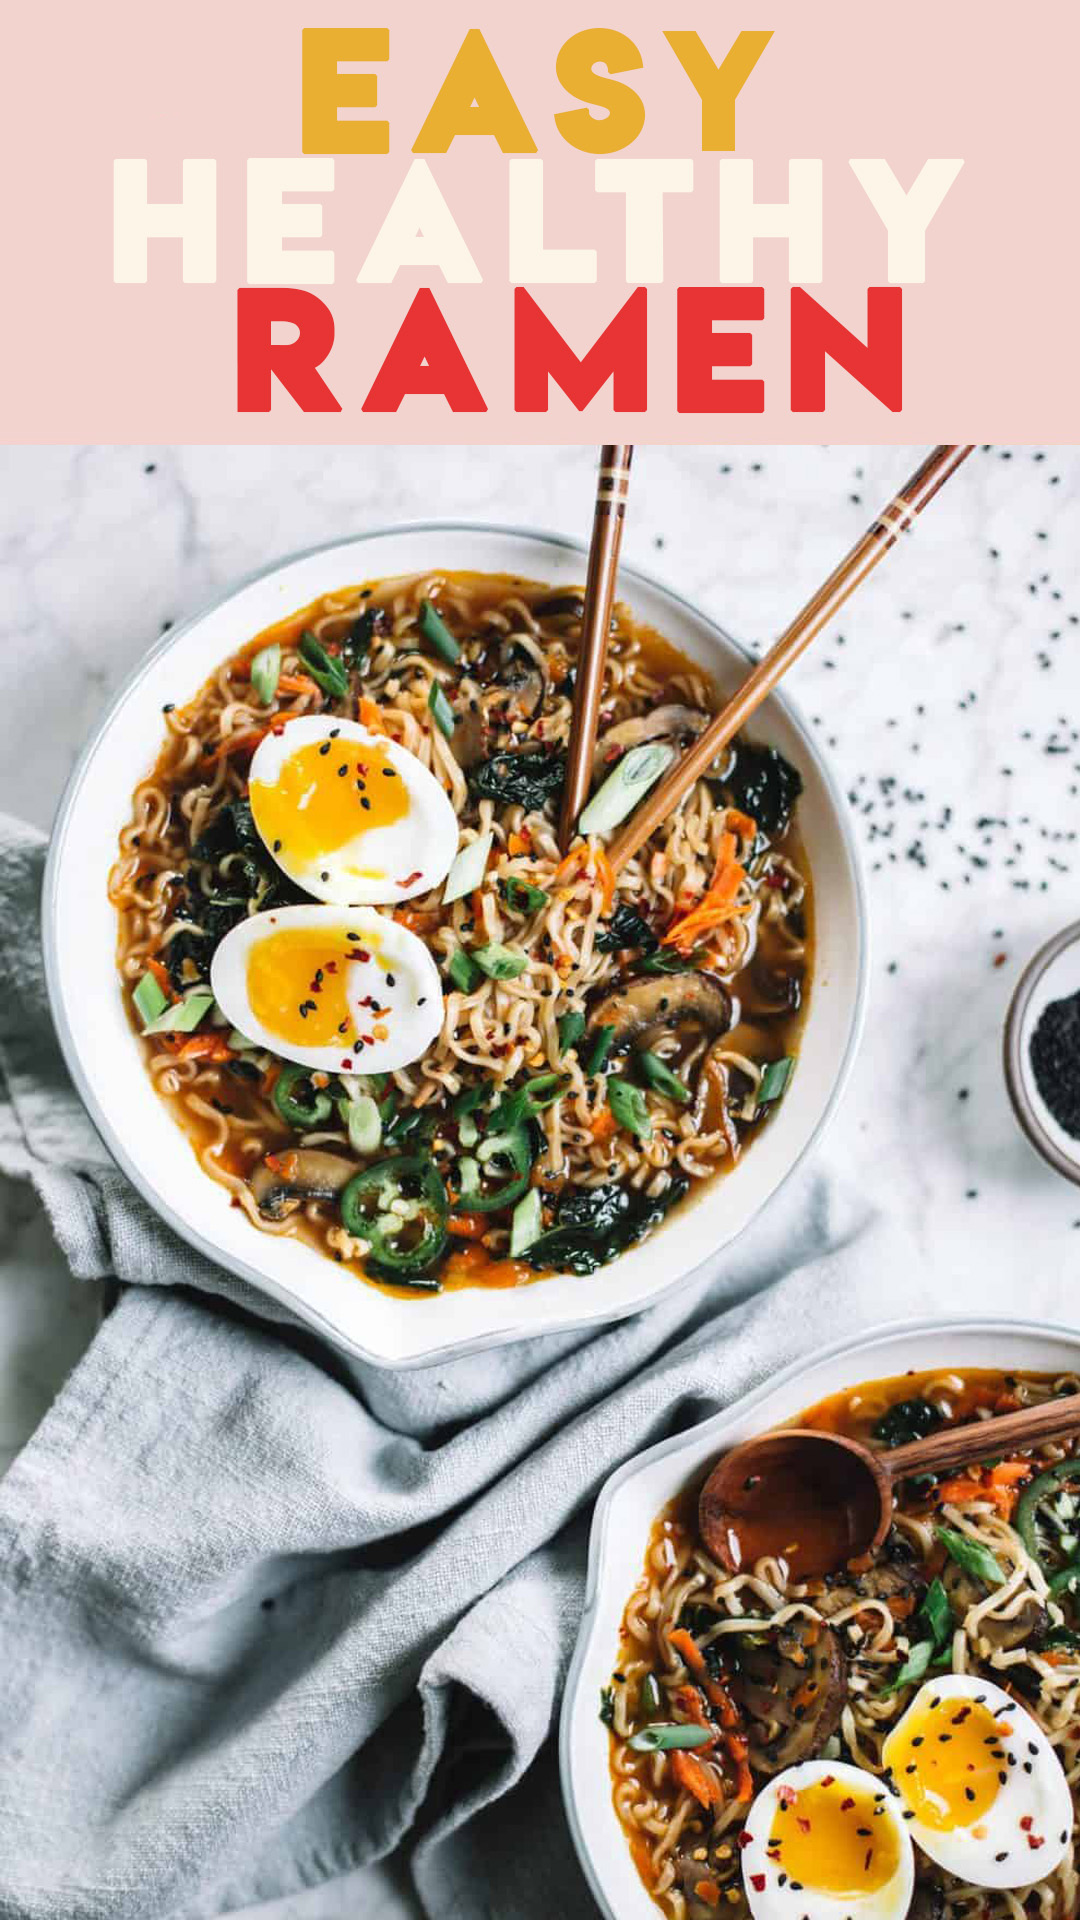 Easy homemade healthy ramen bowls topped with soft boiled eggs, jalapeños and sesame seeds.